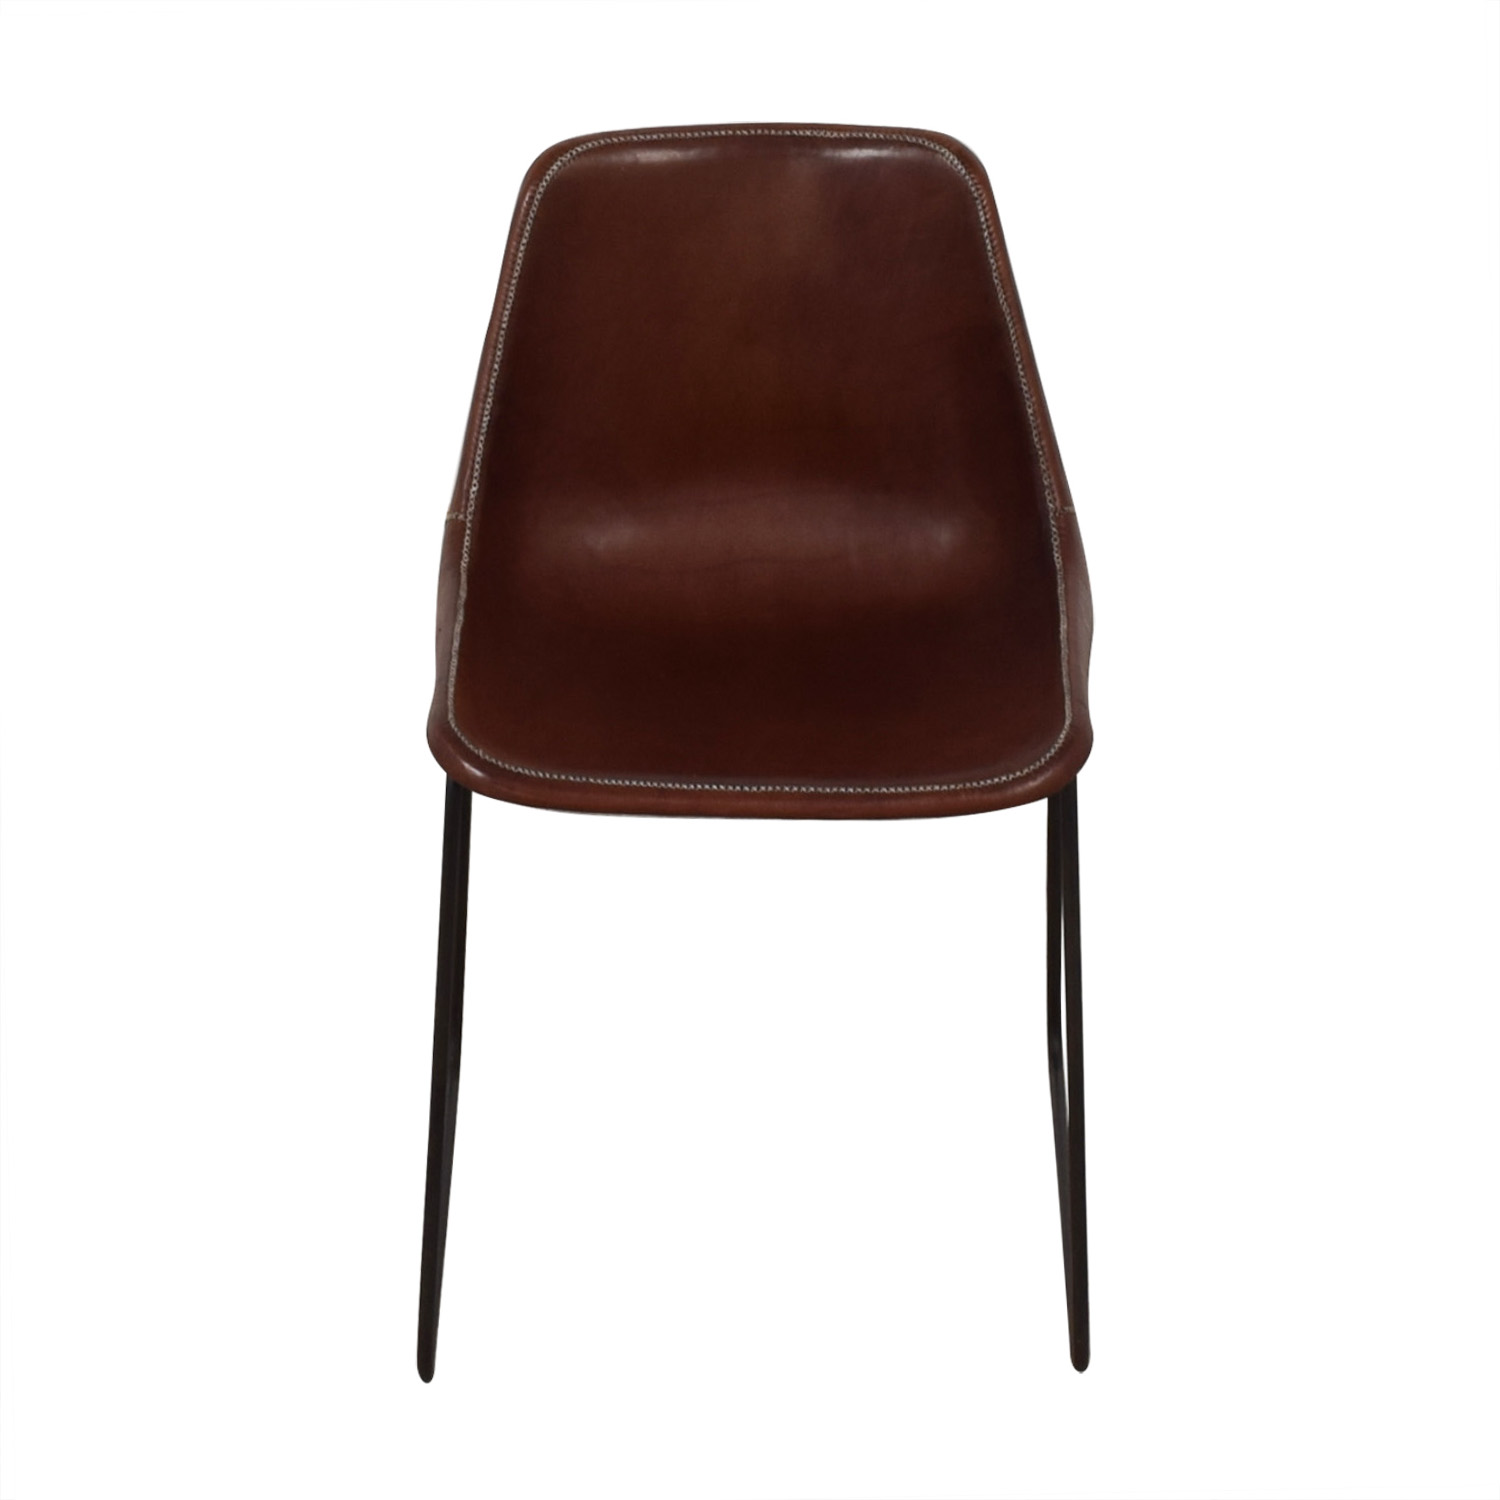 ABC Carpet & Home ABC Carpet & Home Giron Brown Leather Chair for sale